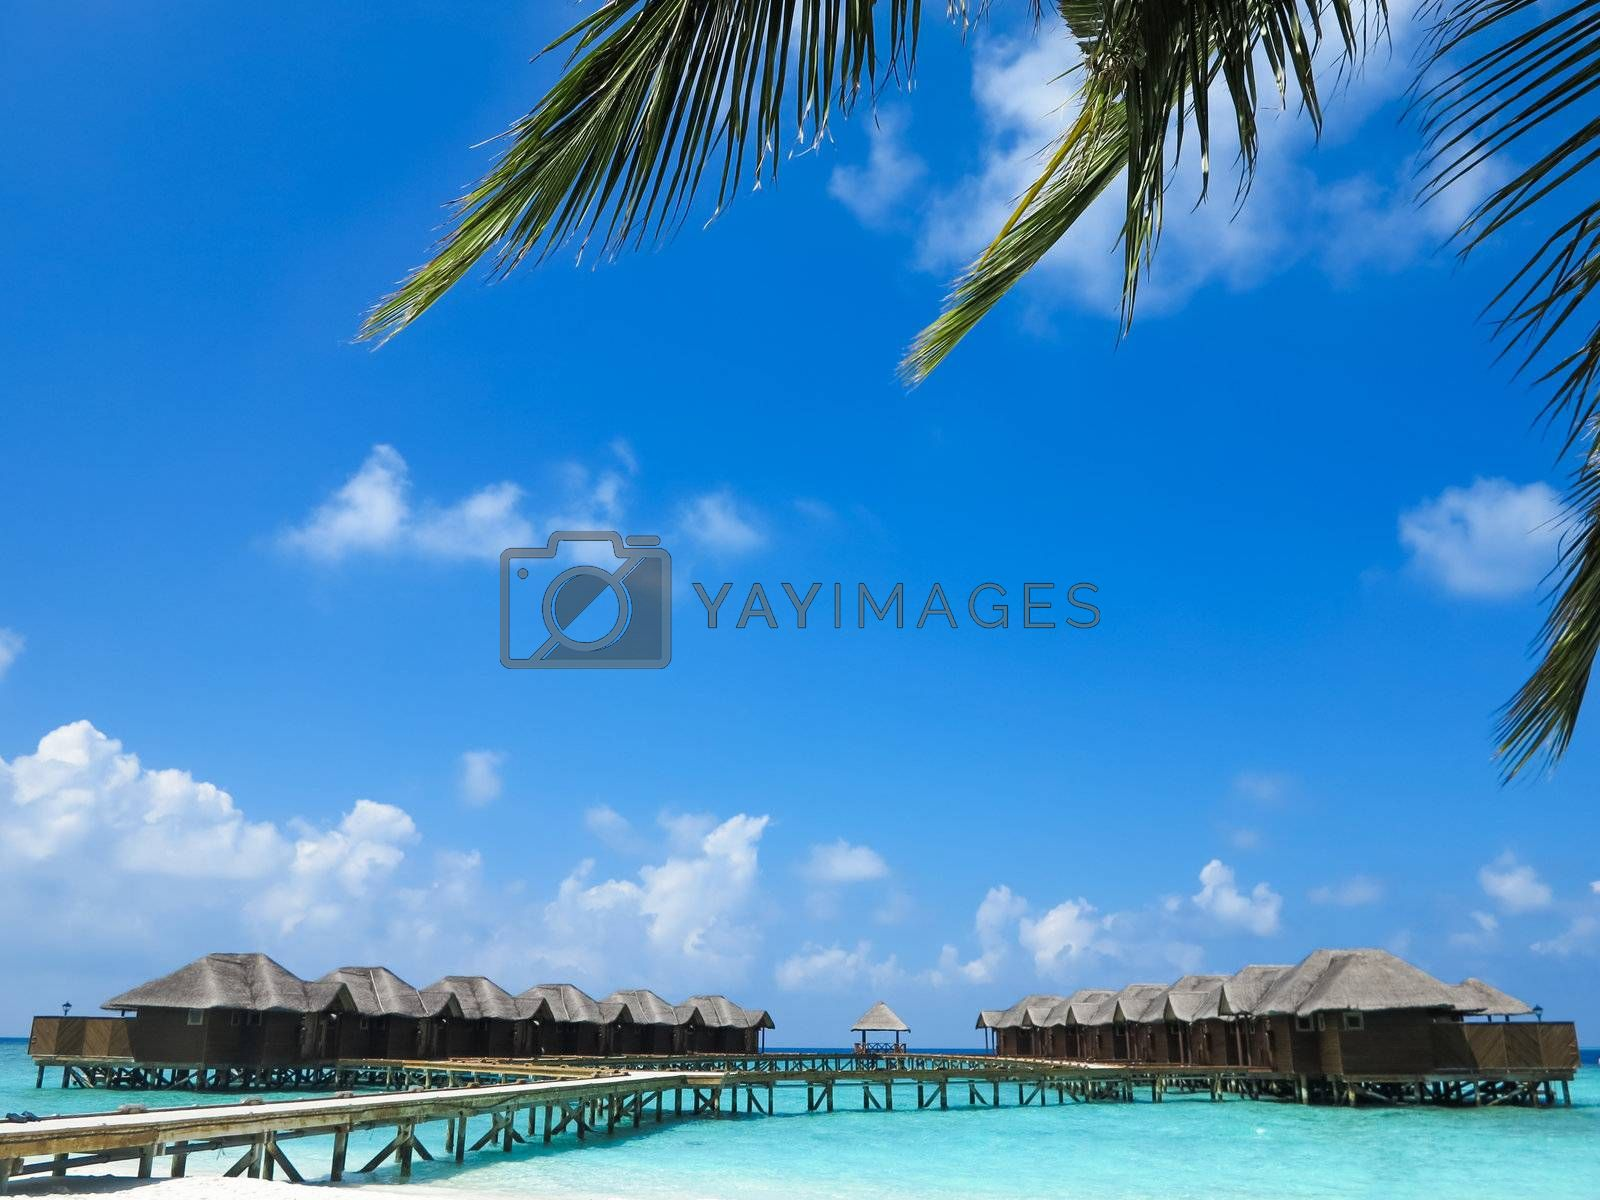 Scenic beauty of ocean cottages, clear blue sky with clouds.